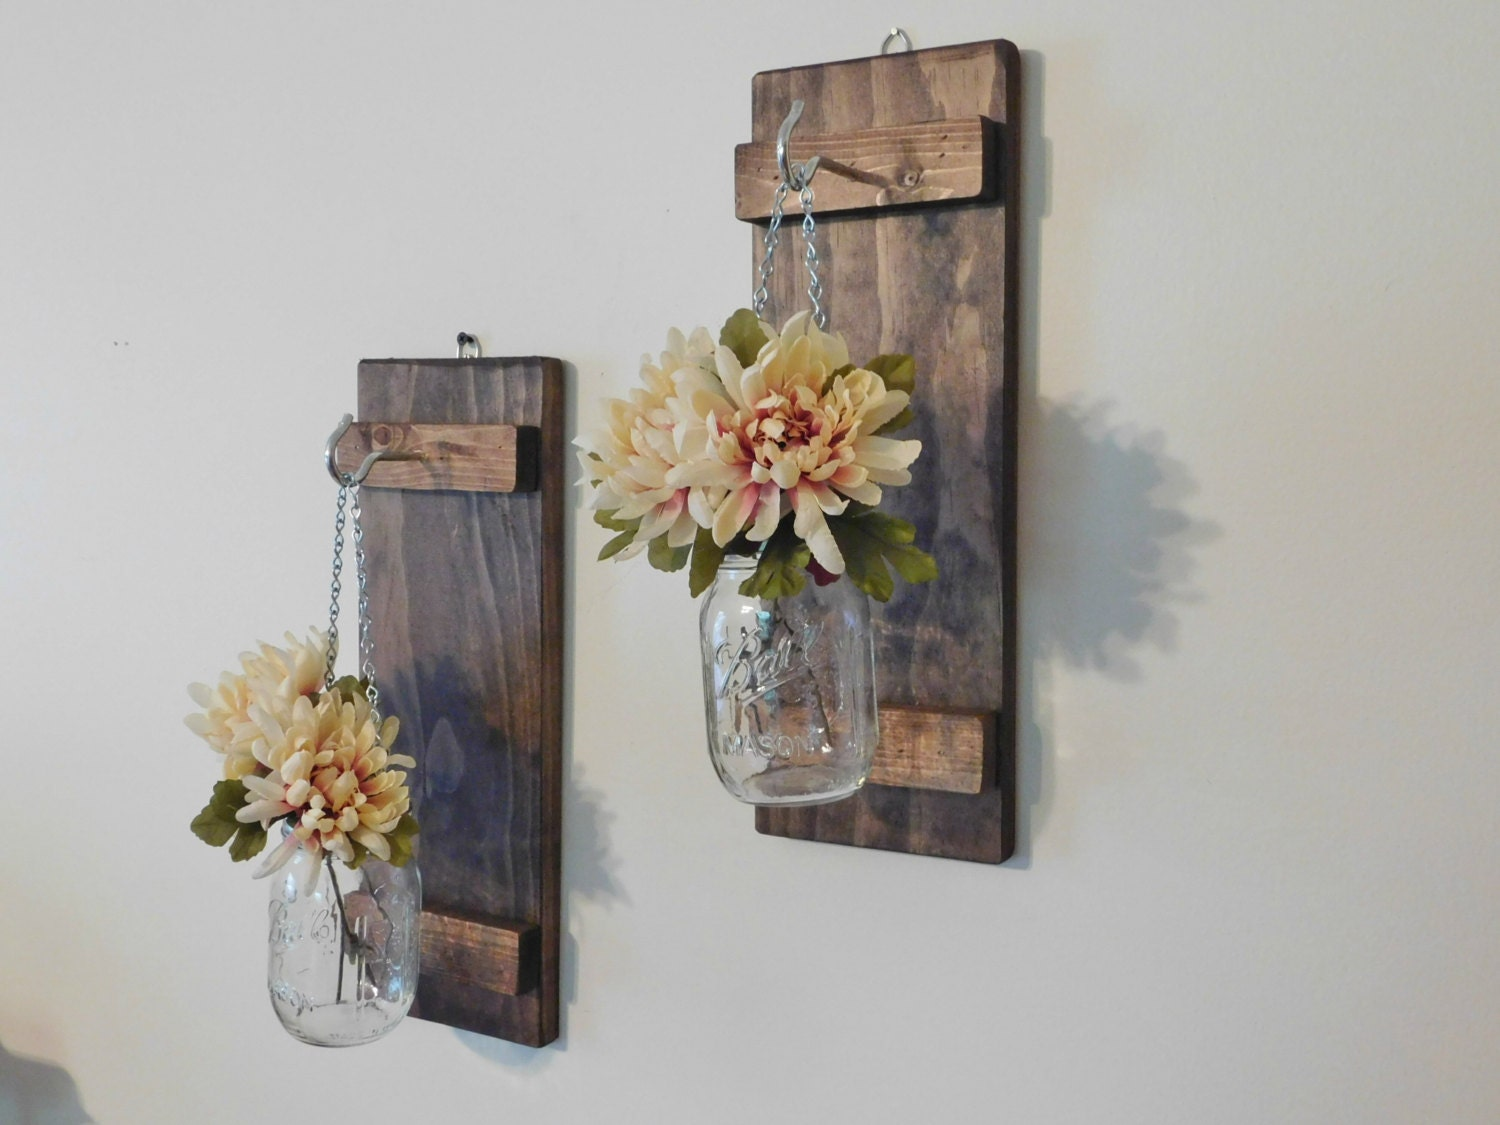 Decorative Wall Sconces For Flowers hanging mason jar wall sconce flower vase candle sconce wall